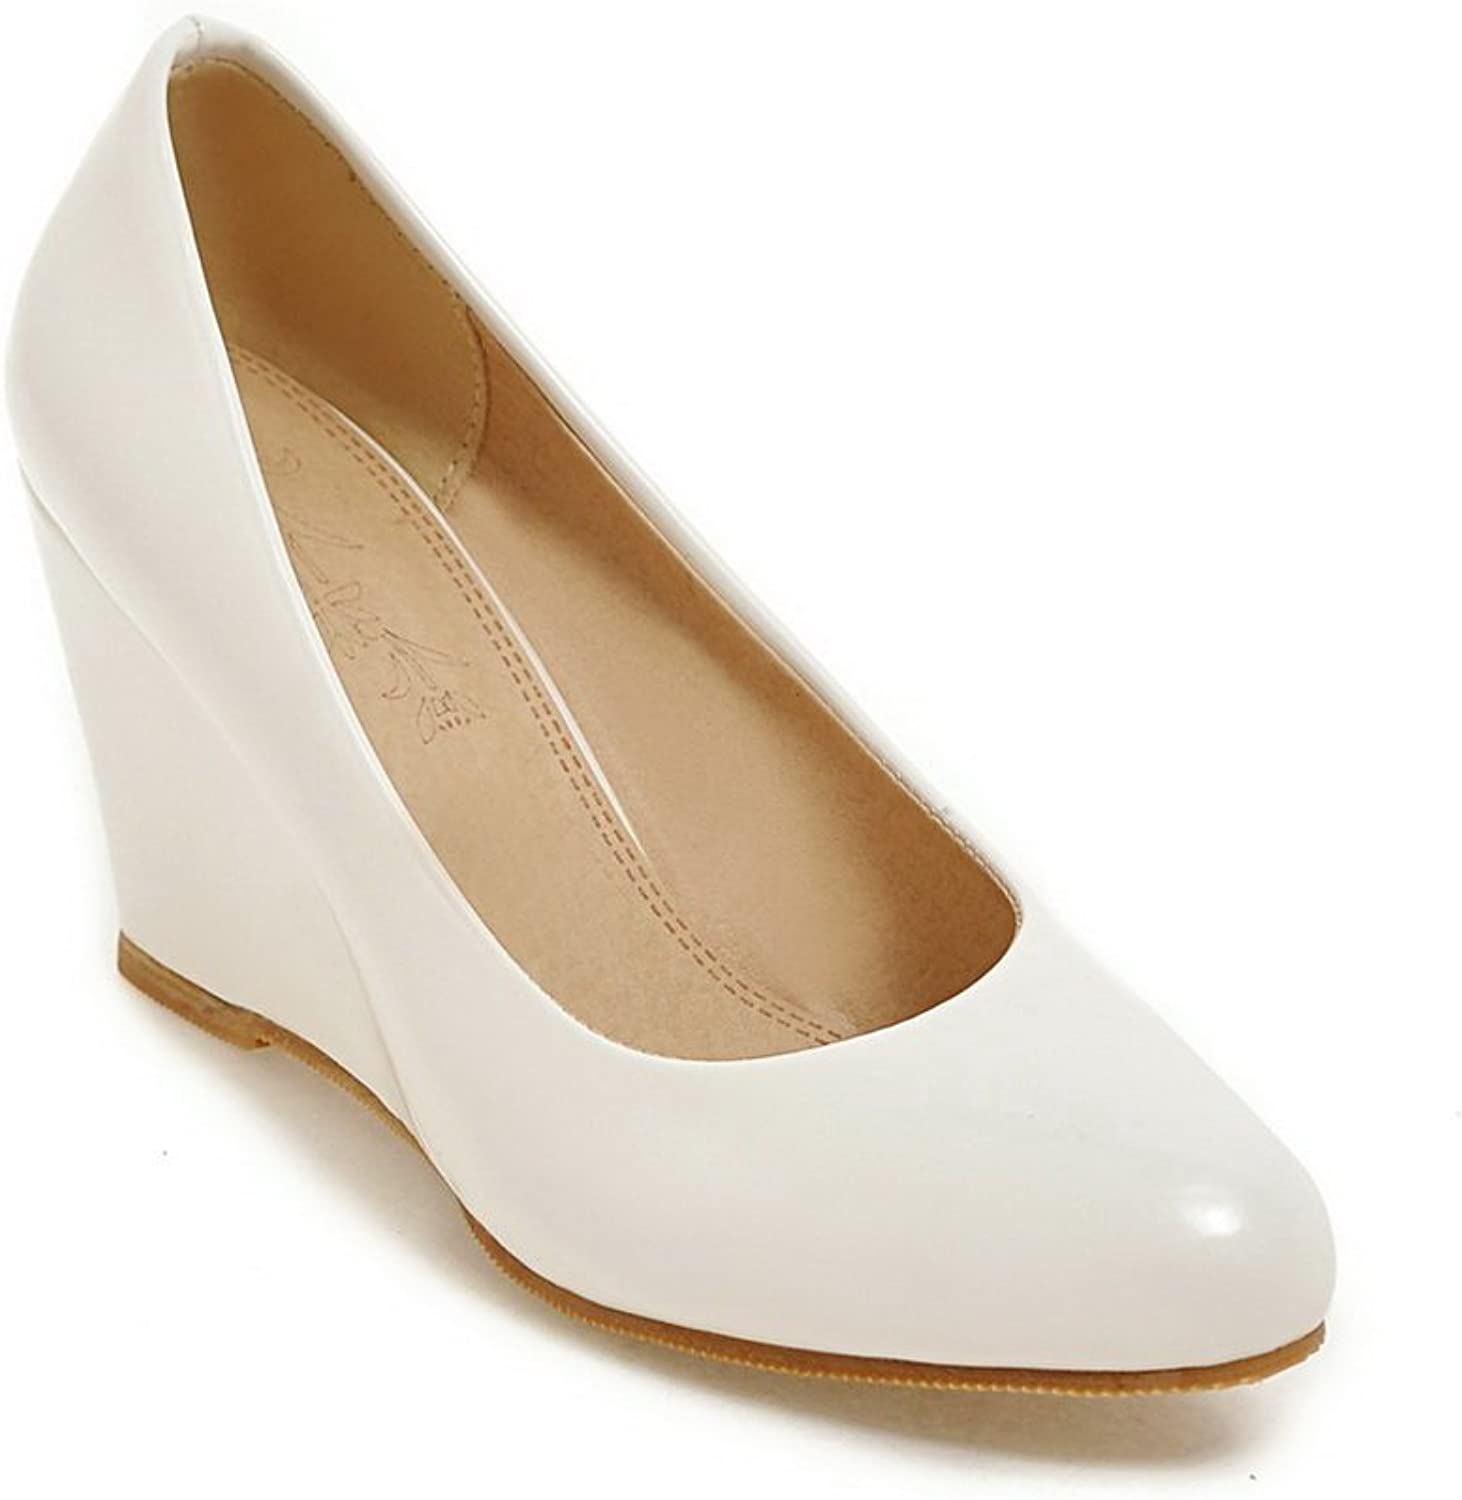 A&N Ladies Pointed-Toe Wedges Fashion Patent-Leather Pumps shoes